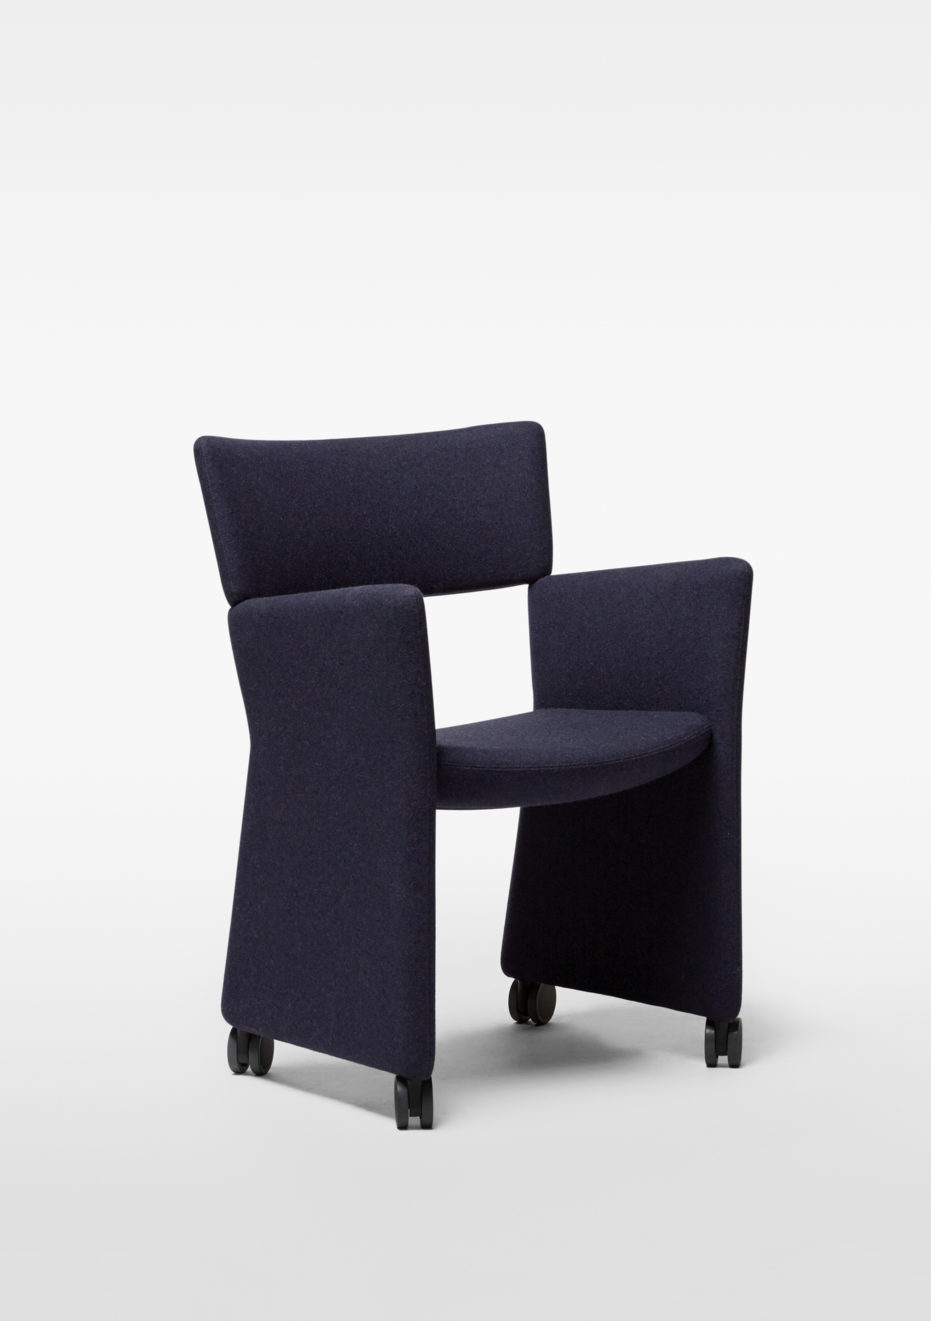 Crown Armchair - Castors / MASSPRODUCTIONS Product Link SPEC SHEET - Inquire within - info@smlpond.com